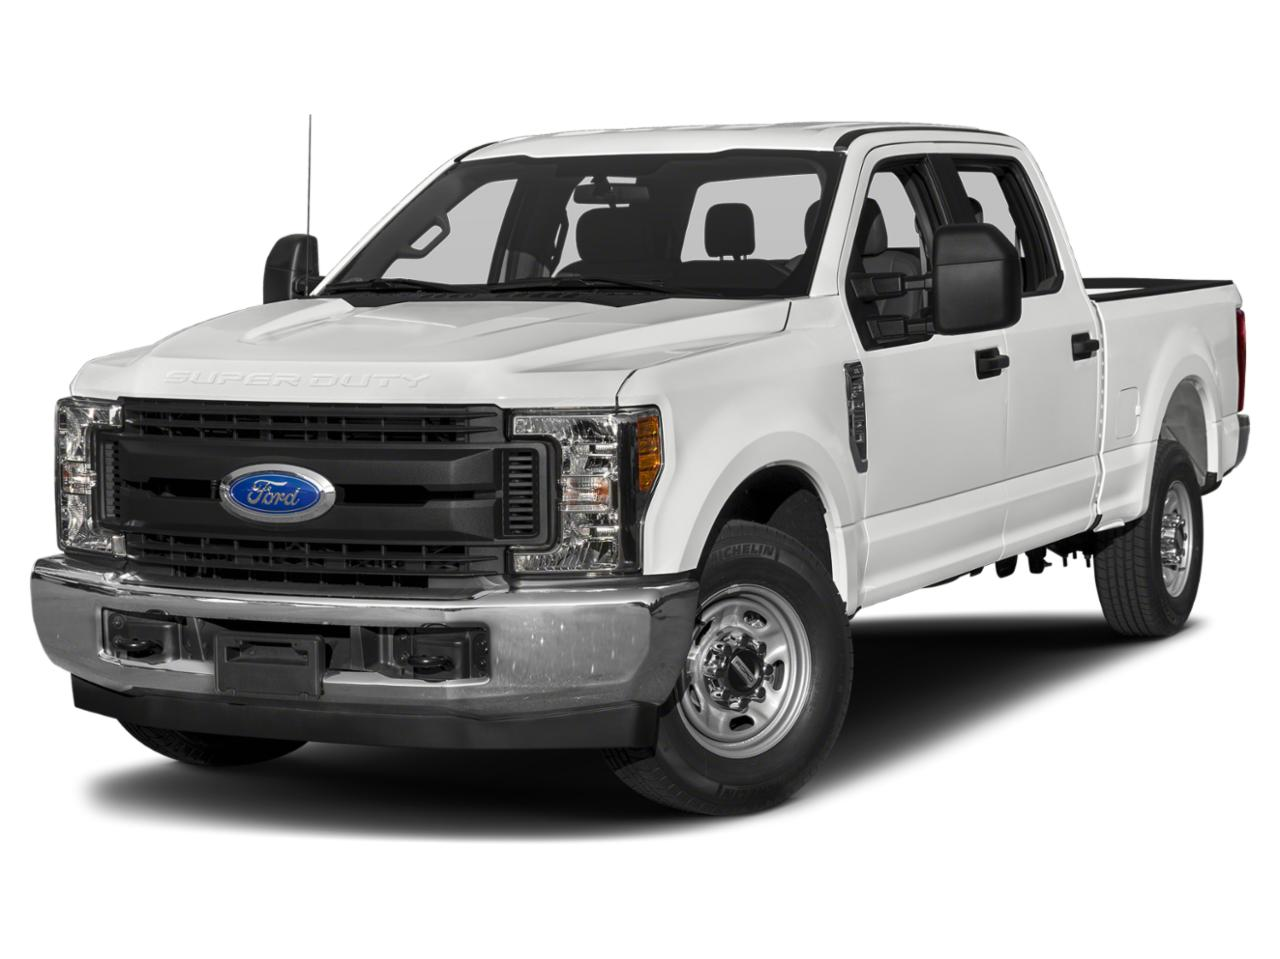 2018 Ford Super Duty F-250 SRW Vehicle Photo in Spokane, WA 99207